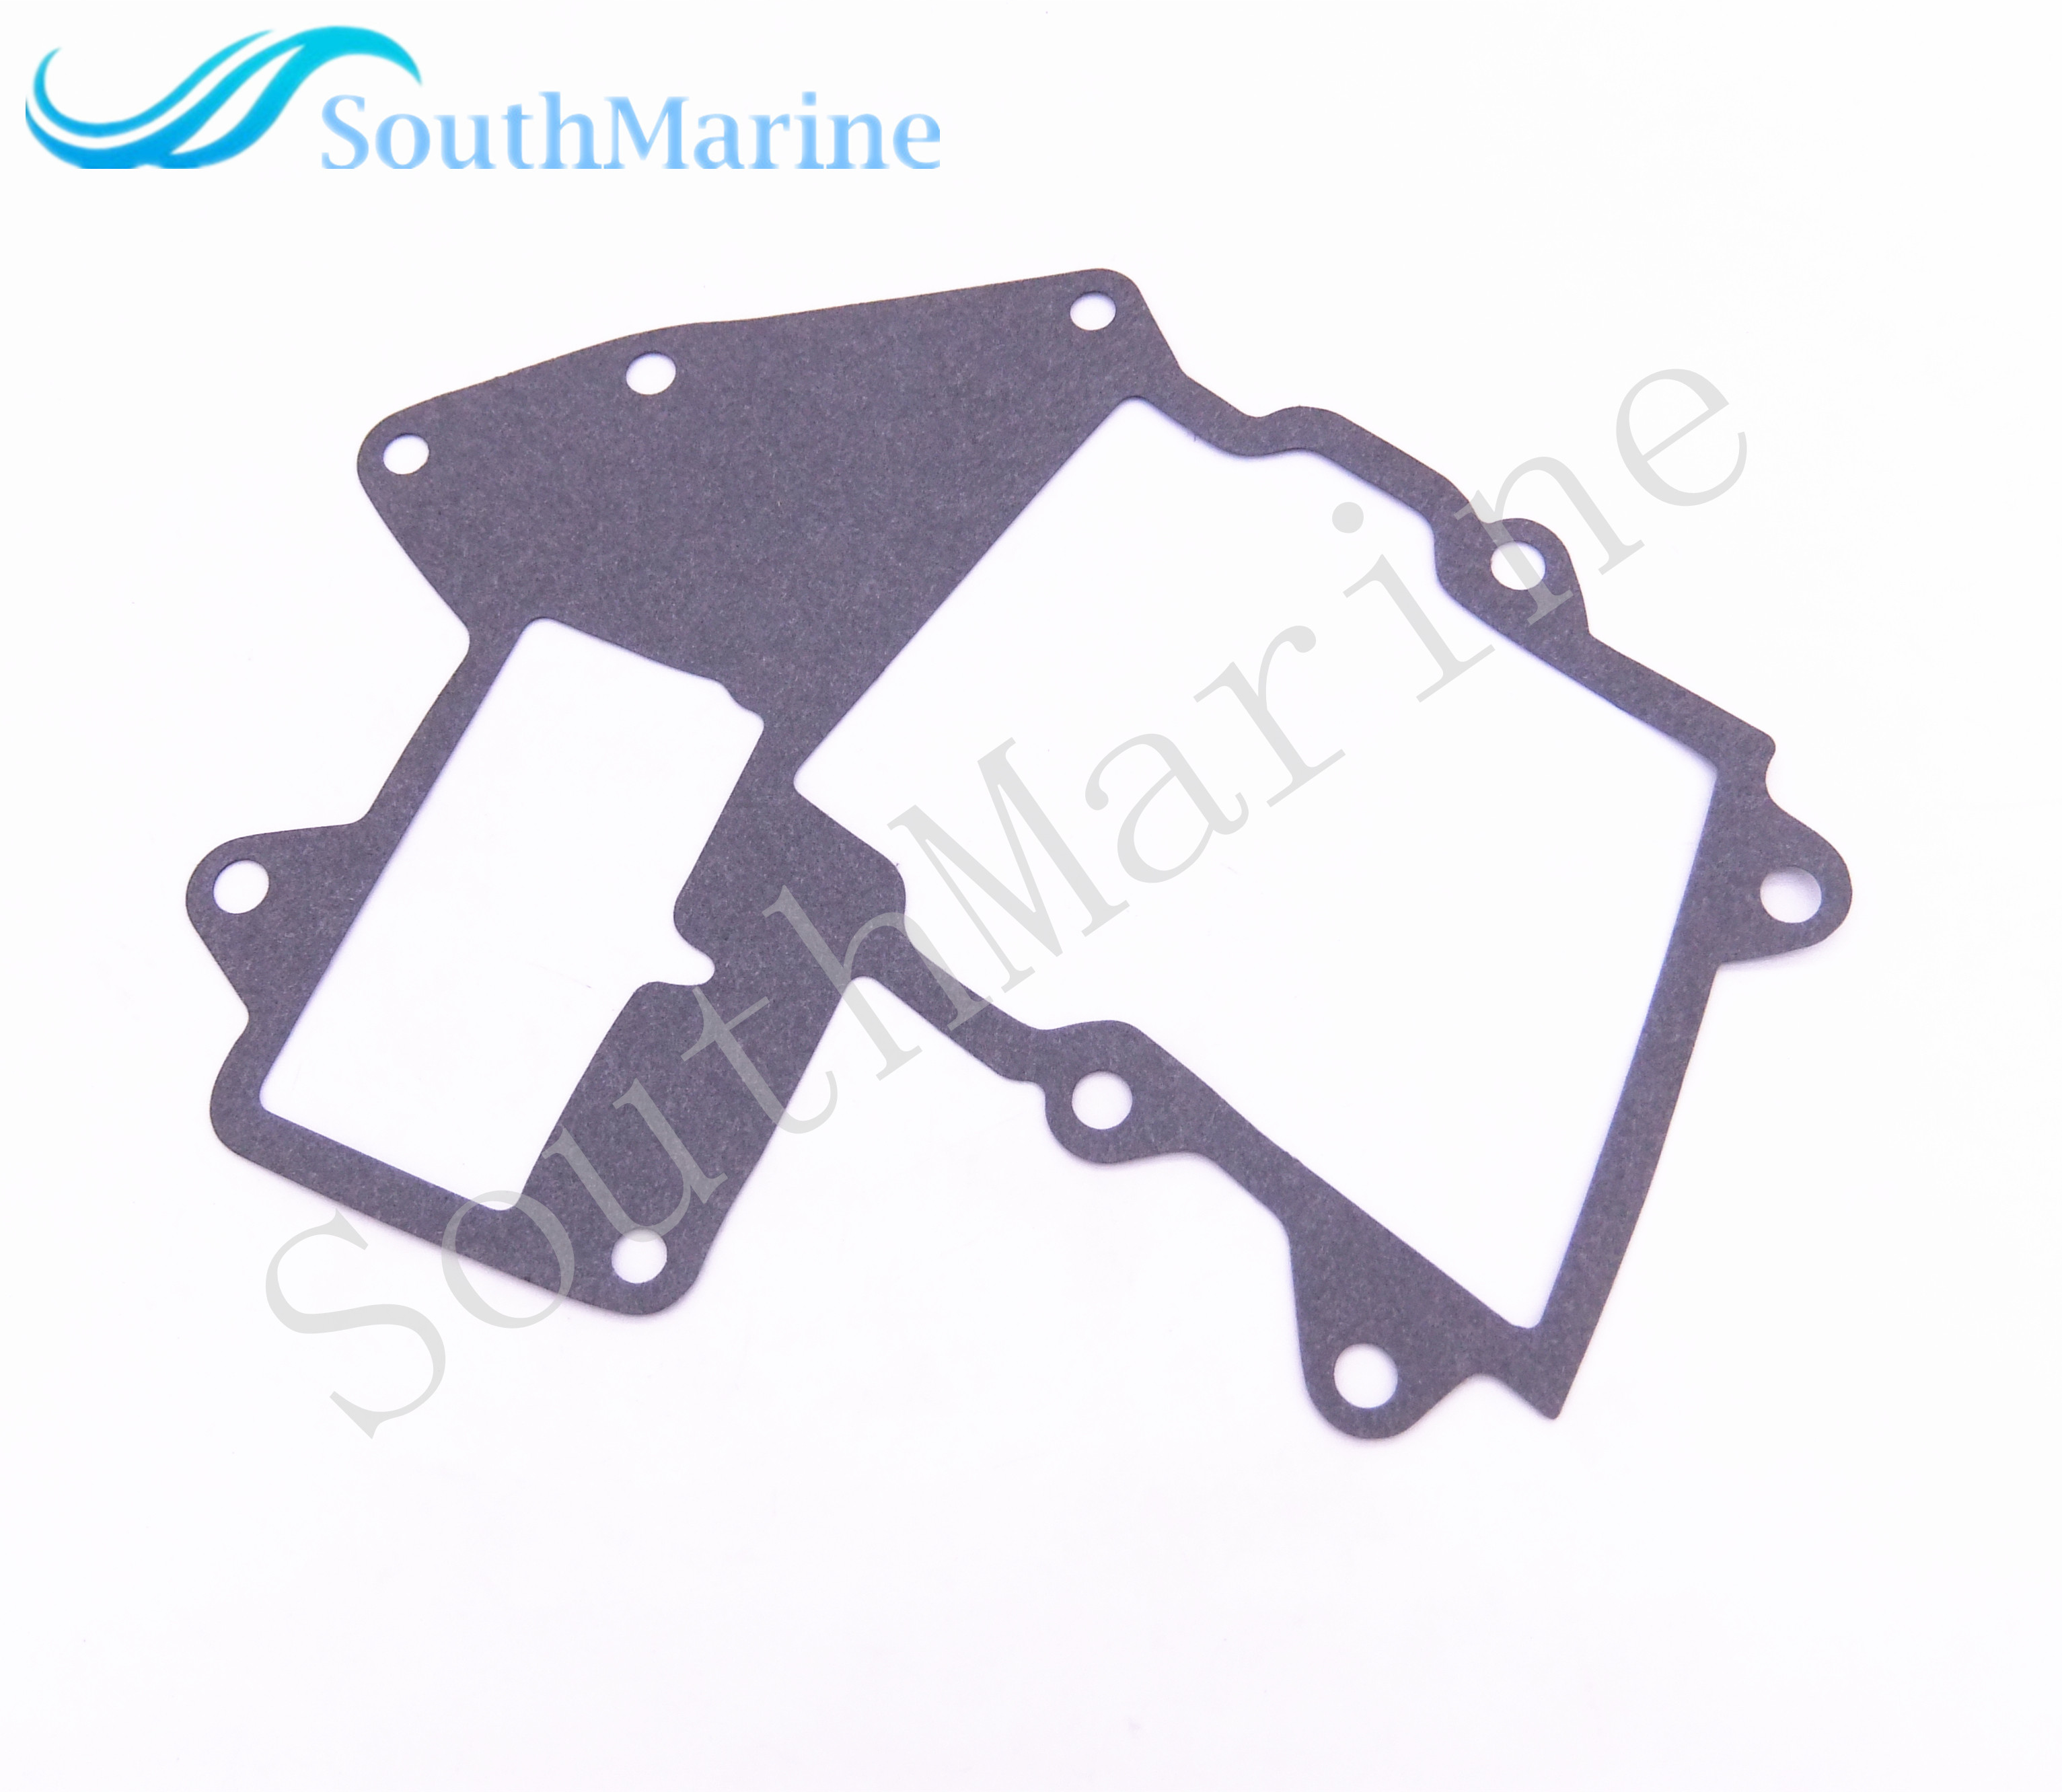 Boat Parts & Accessories Intellective Boat Motor 6f5-13646-00 01 6f5-13646-a0 A1 A2 Gasket Manifold For Yamaha C40 E40 40hp 36hp Outboard